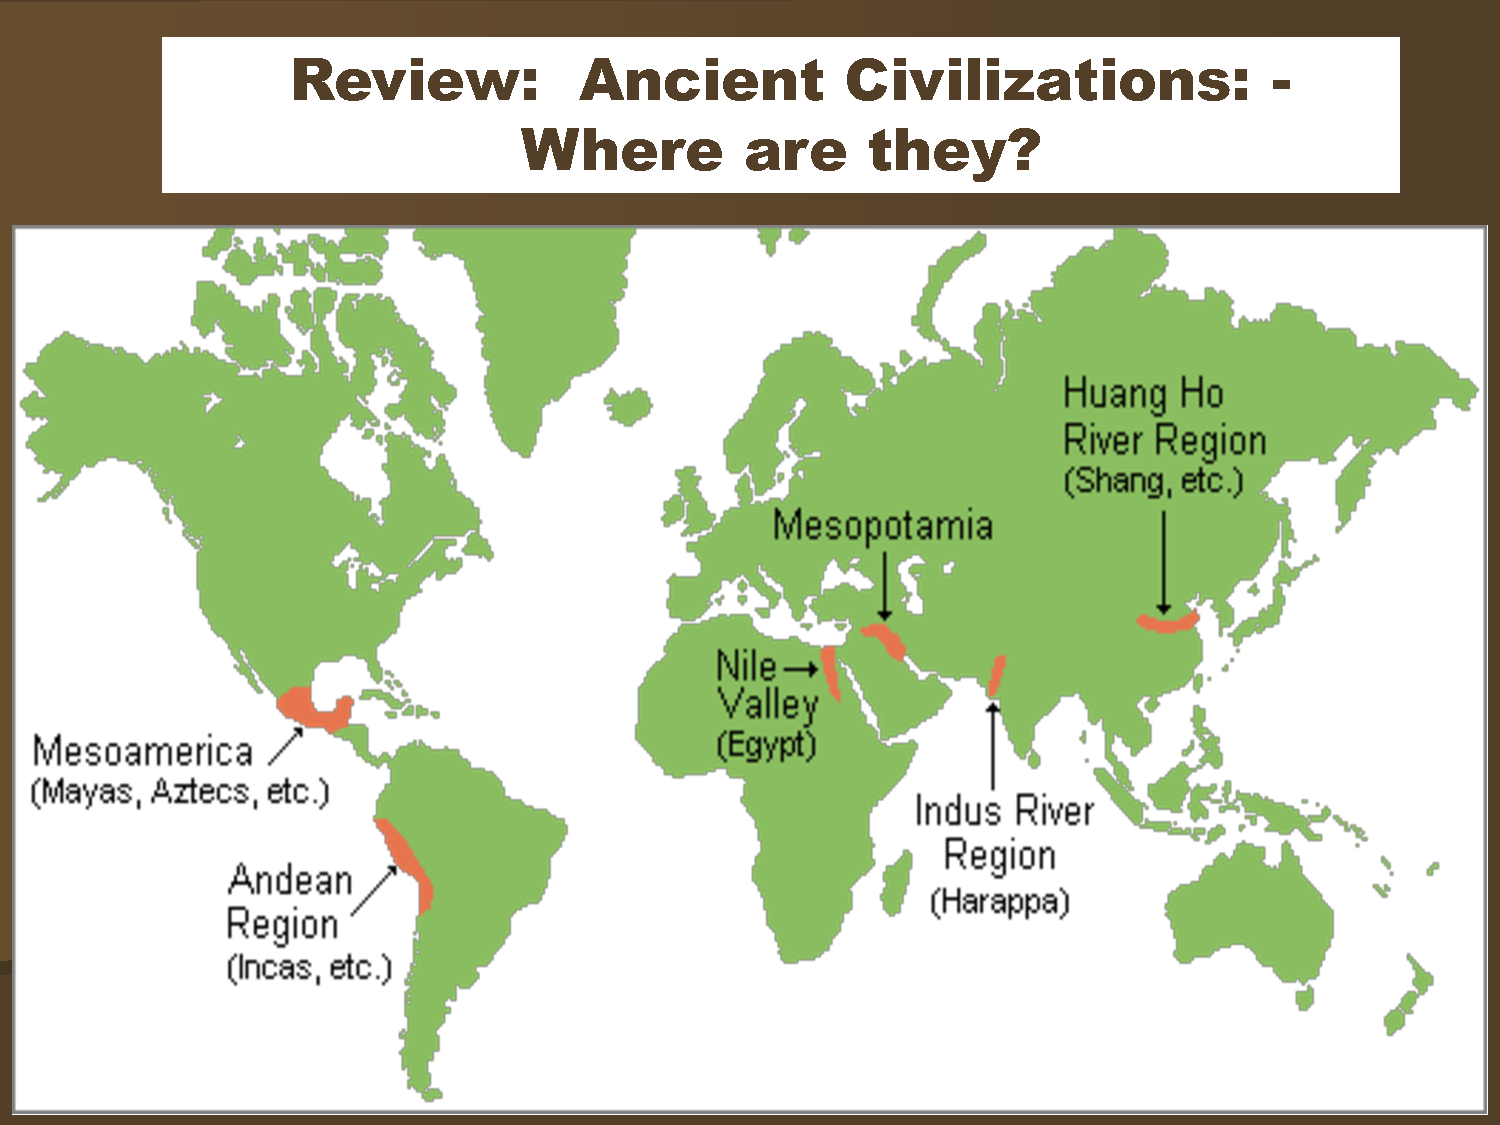 Period 1 Ancient Civilizations Visual Resources